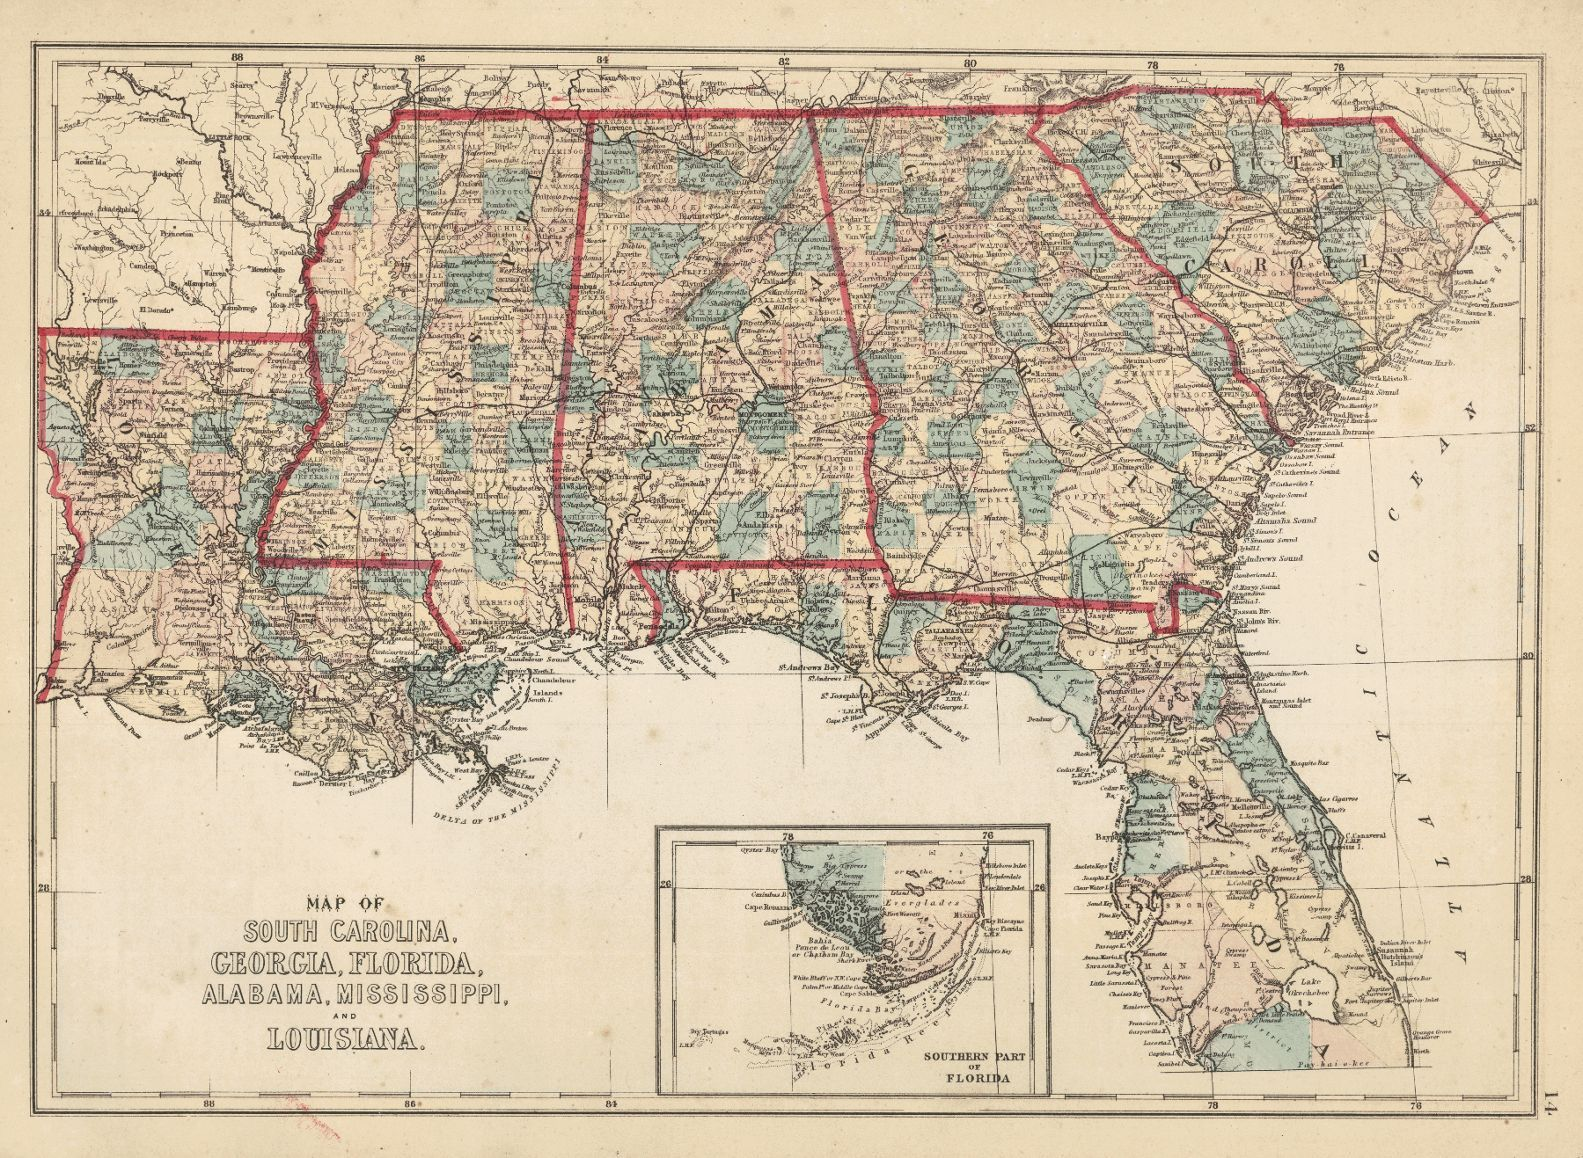 Map of South Carolina, Georgia, Florida, Alabama